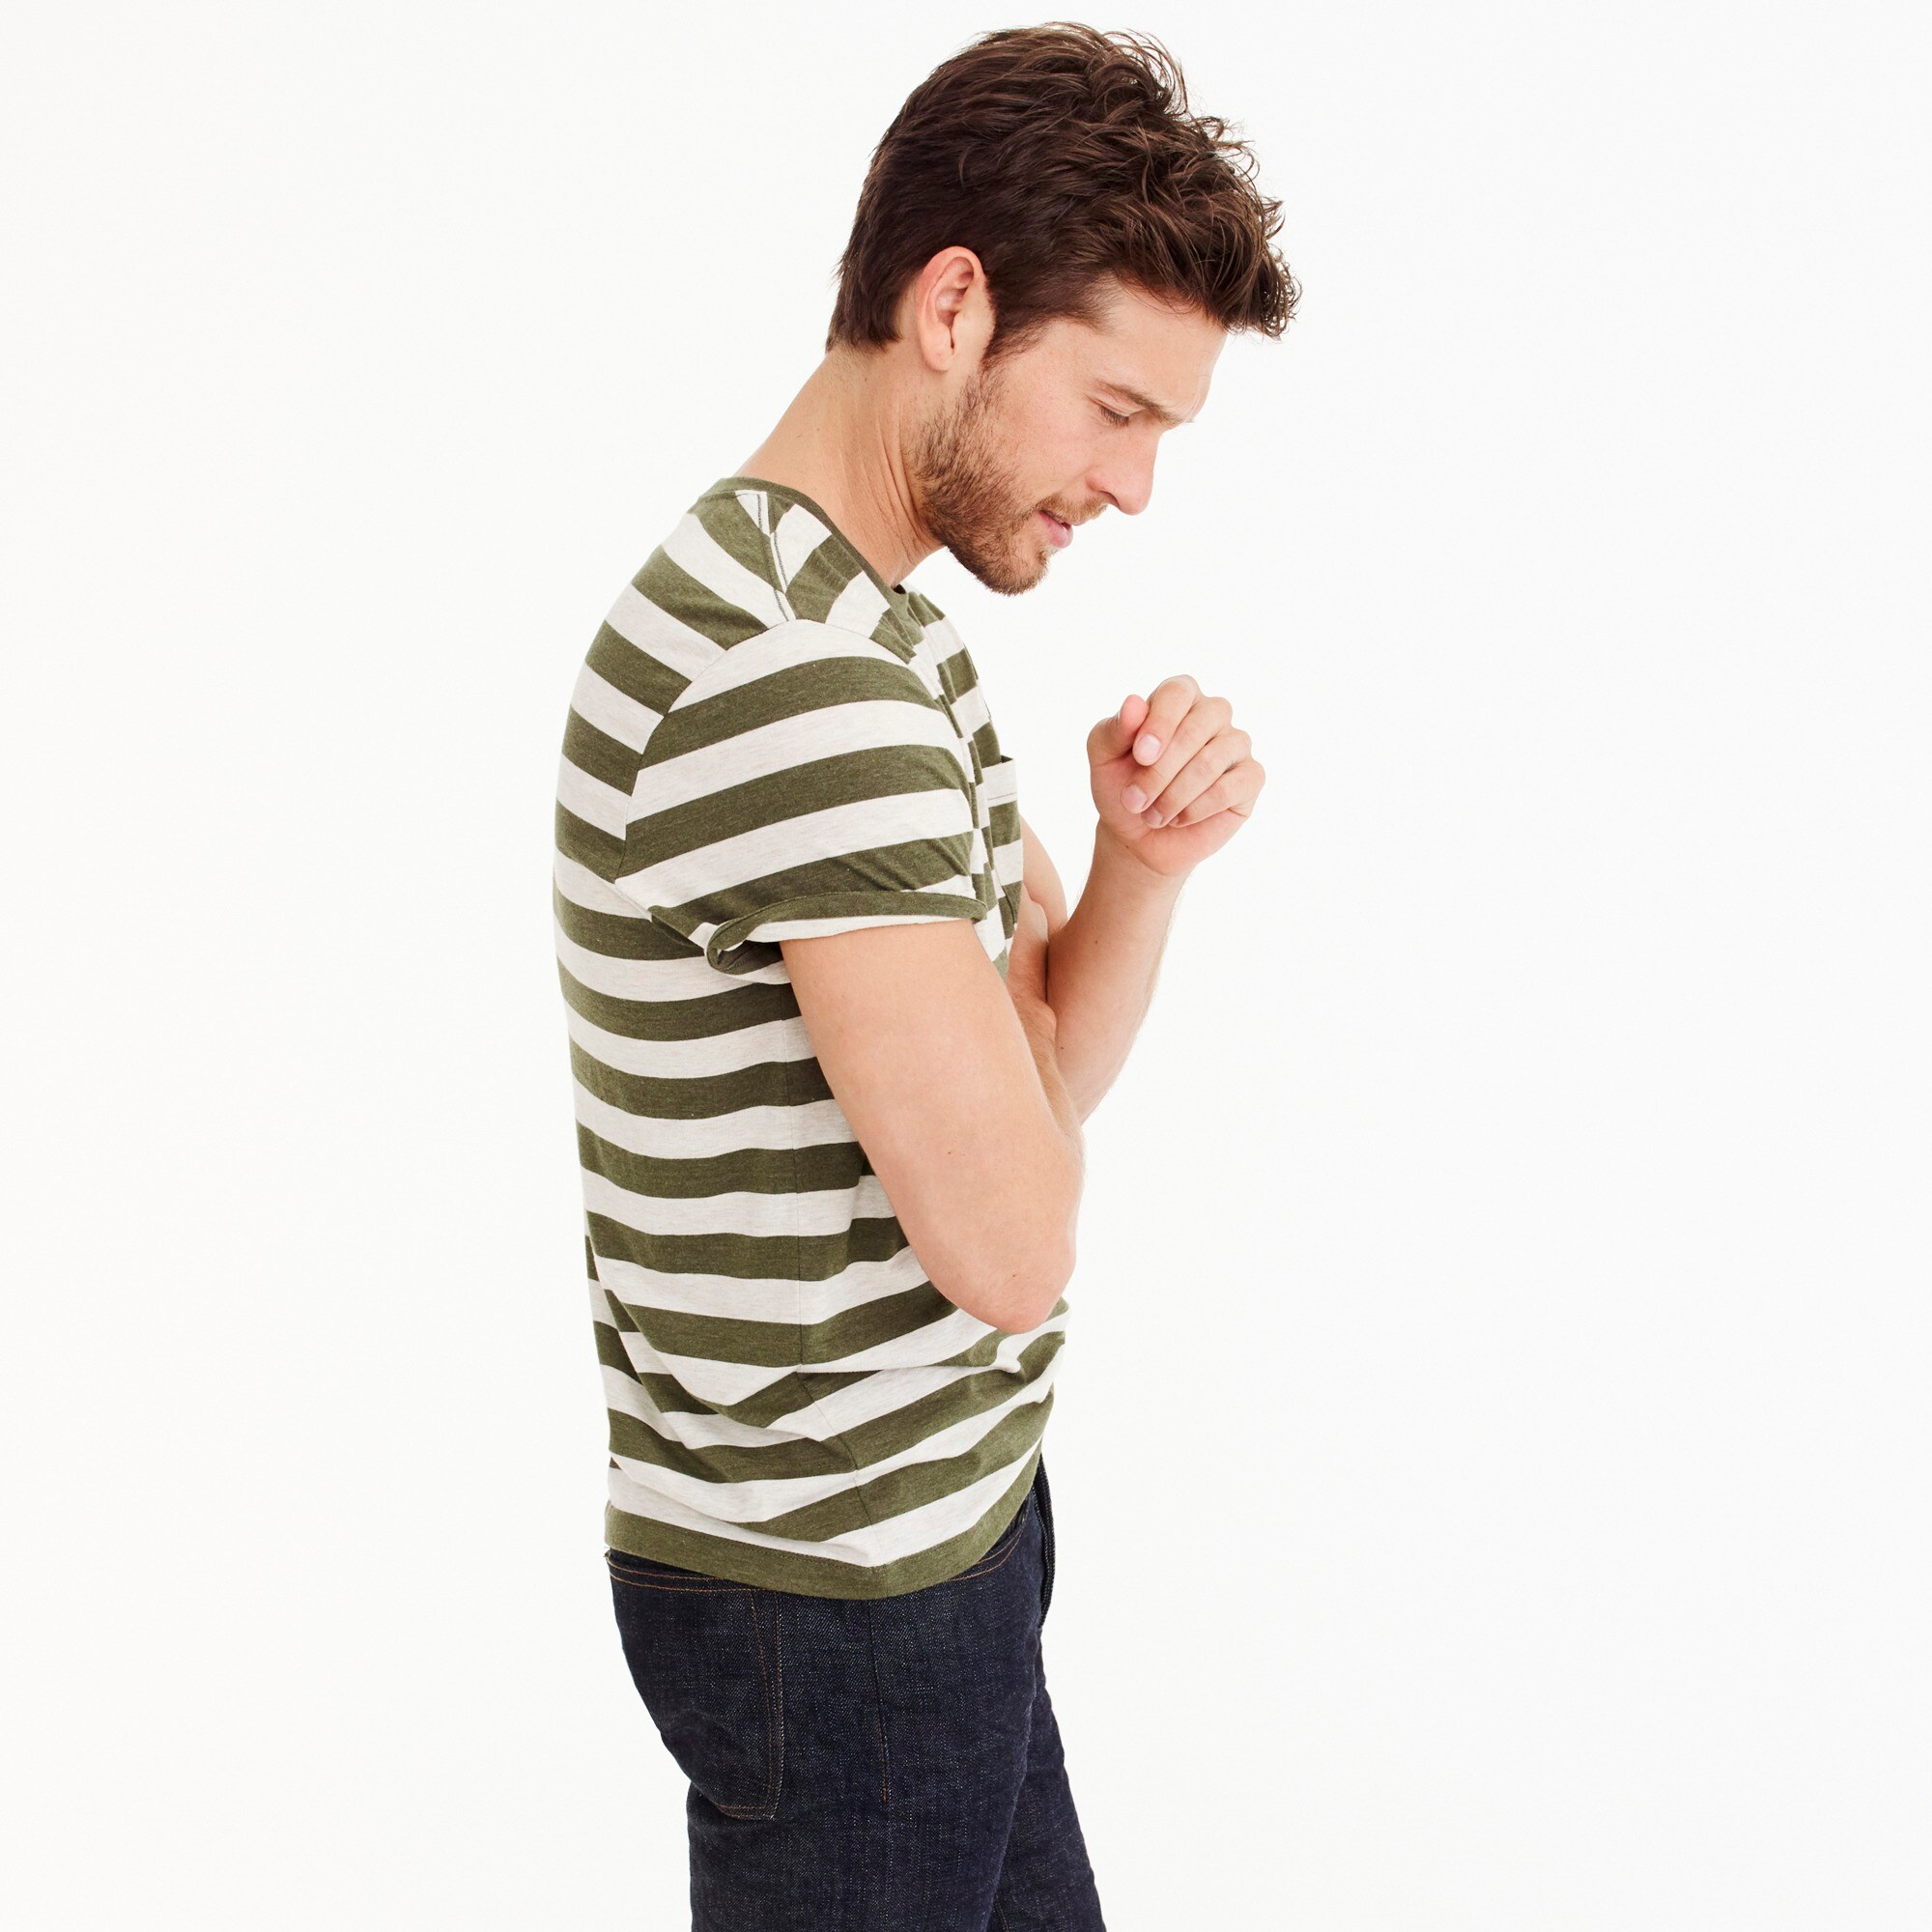 Image 3 for J.Crew Mercantile Broken-in T-shirt in Bedford stripe